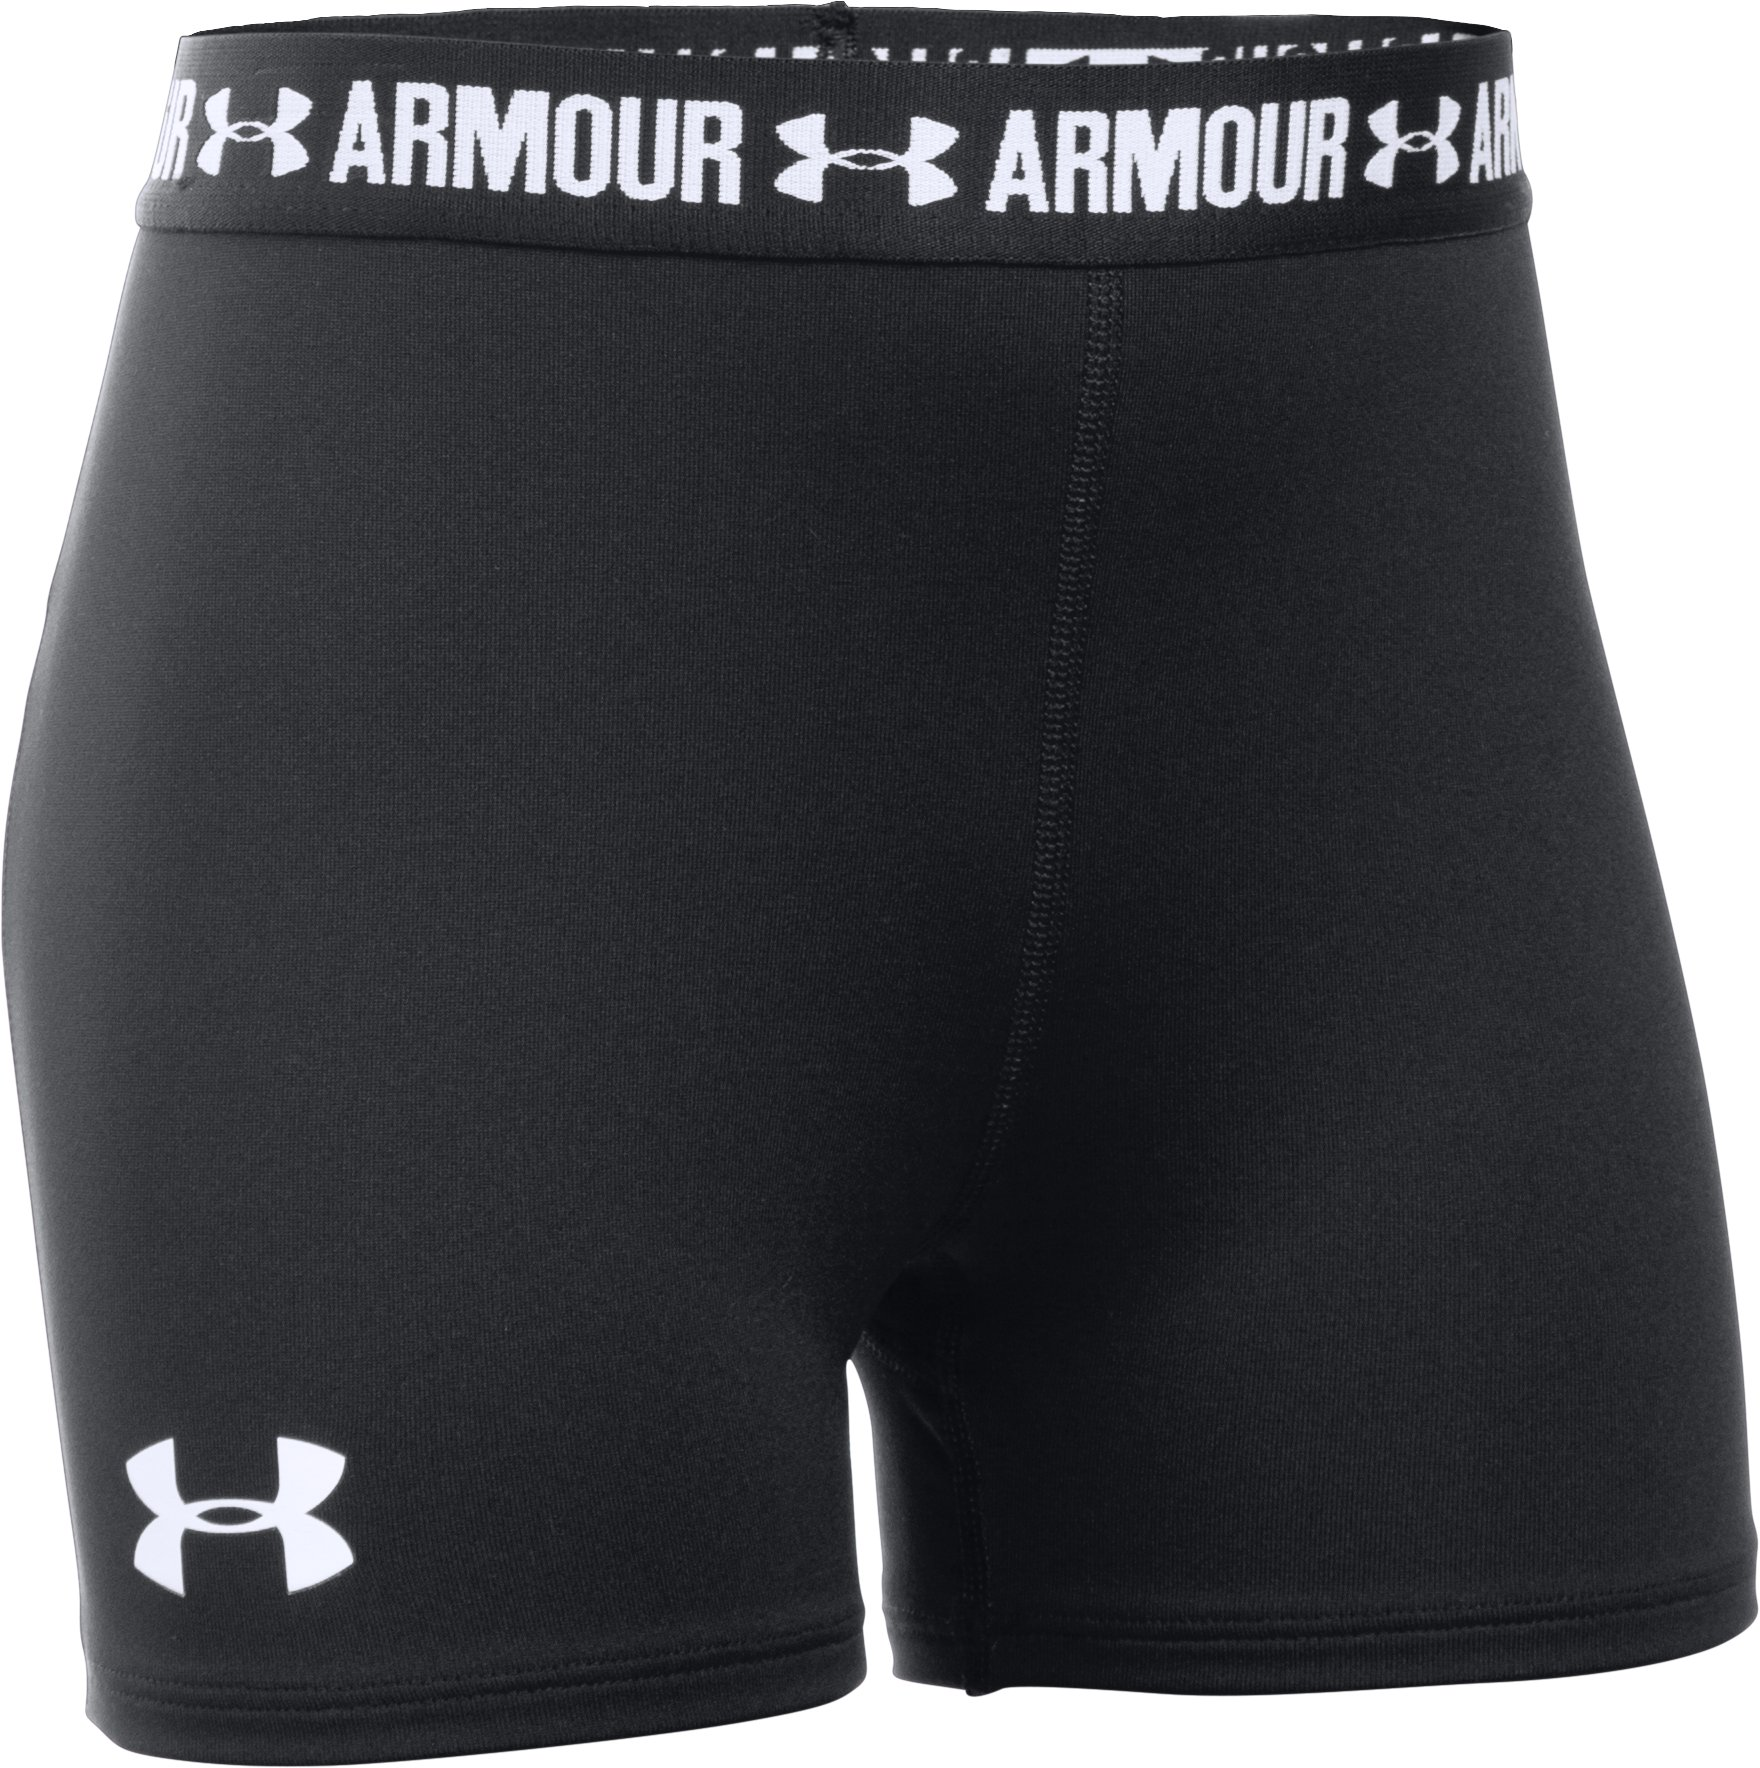 "black shorty Girls' UA HeatGear® Armour 3"" Shorty Great Fit and length...Excellent for netball and running...Just fit perfect for my girl games!"